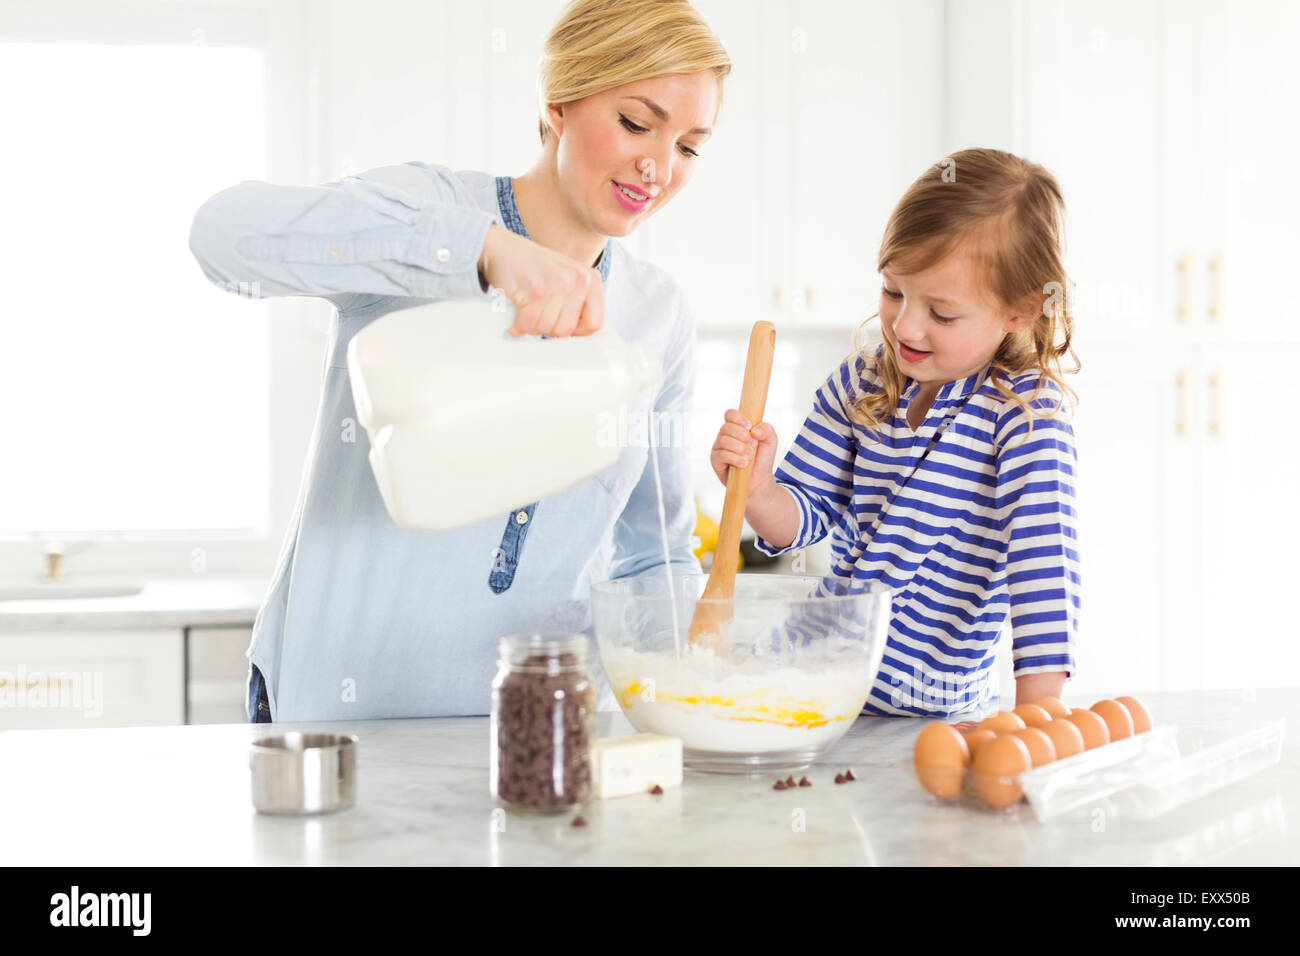 Mother and daughter (4-5) baking - Stock Image